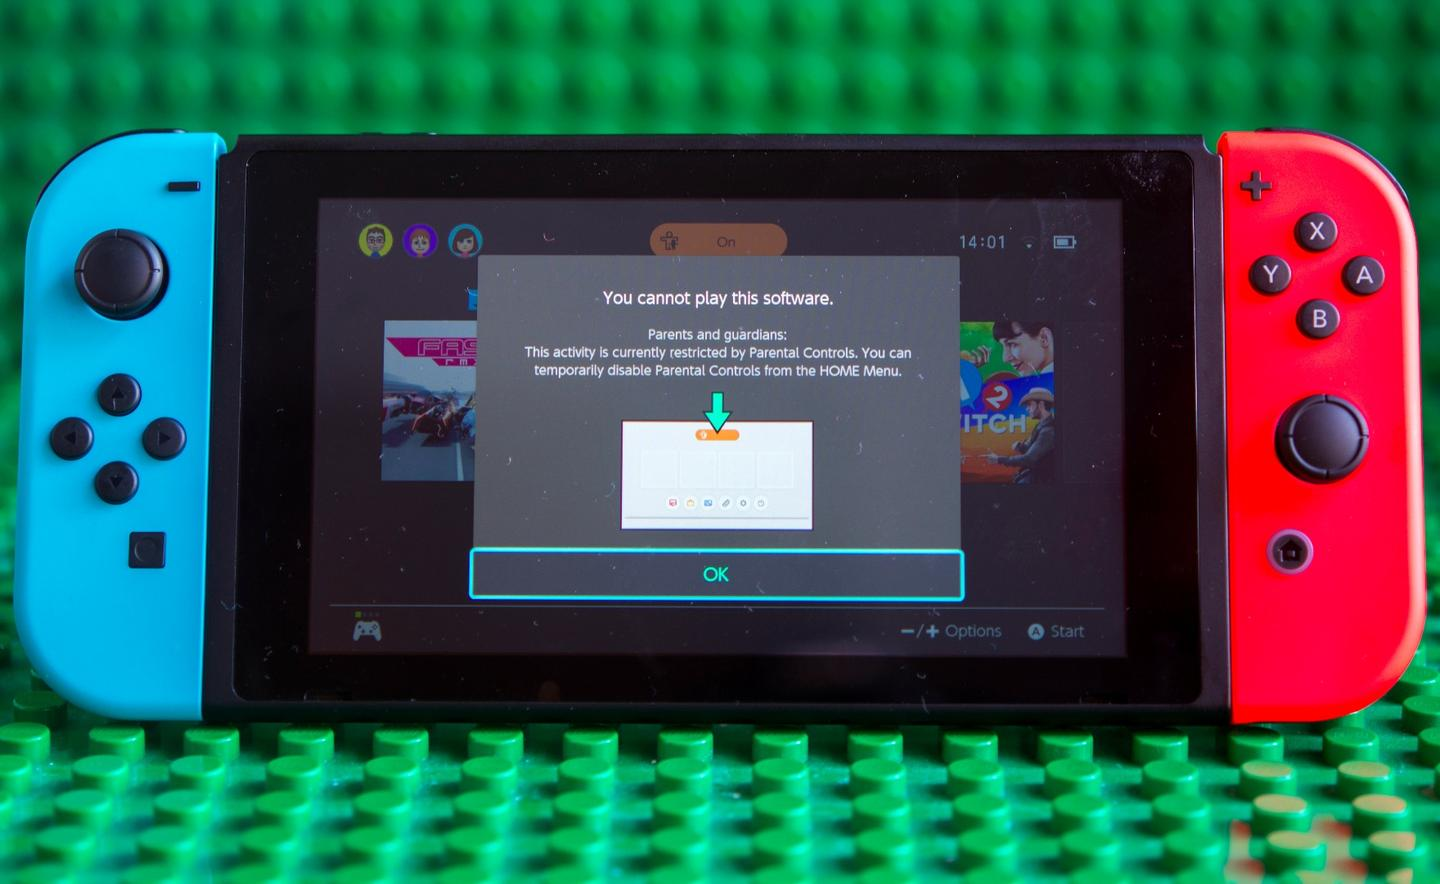 With parental controls activated on the Nintendo Switch certain activities can be blocked